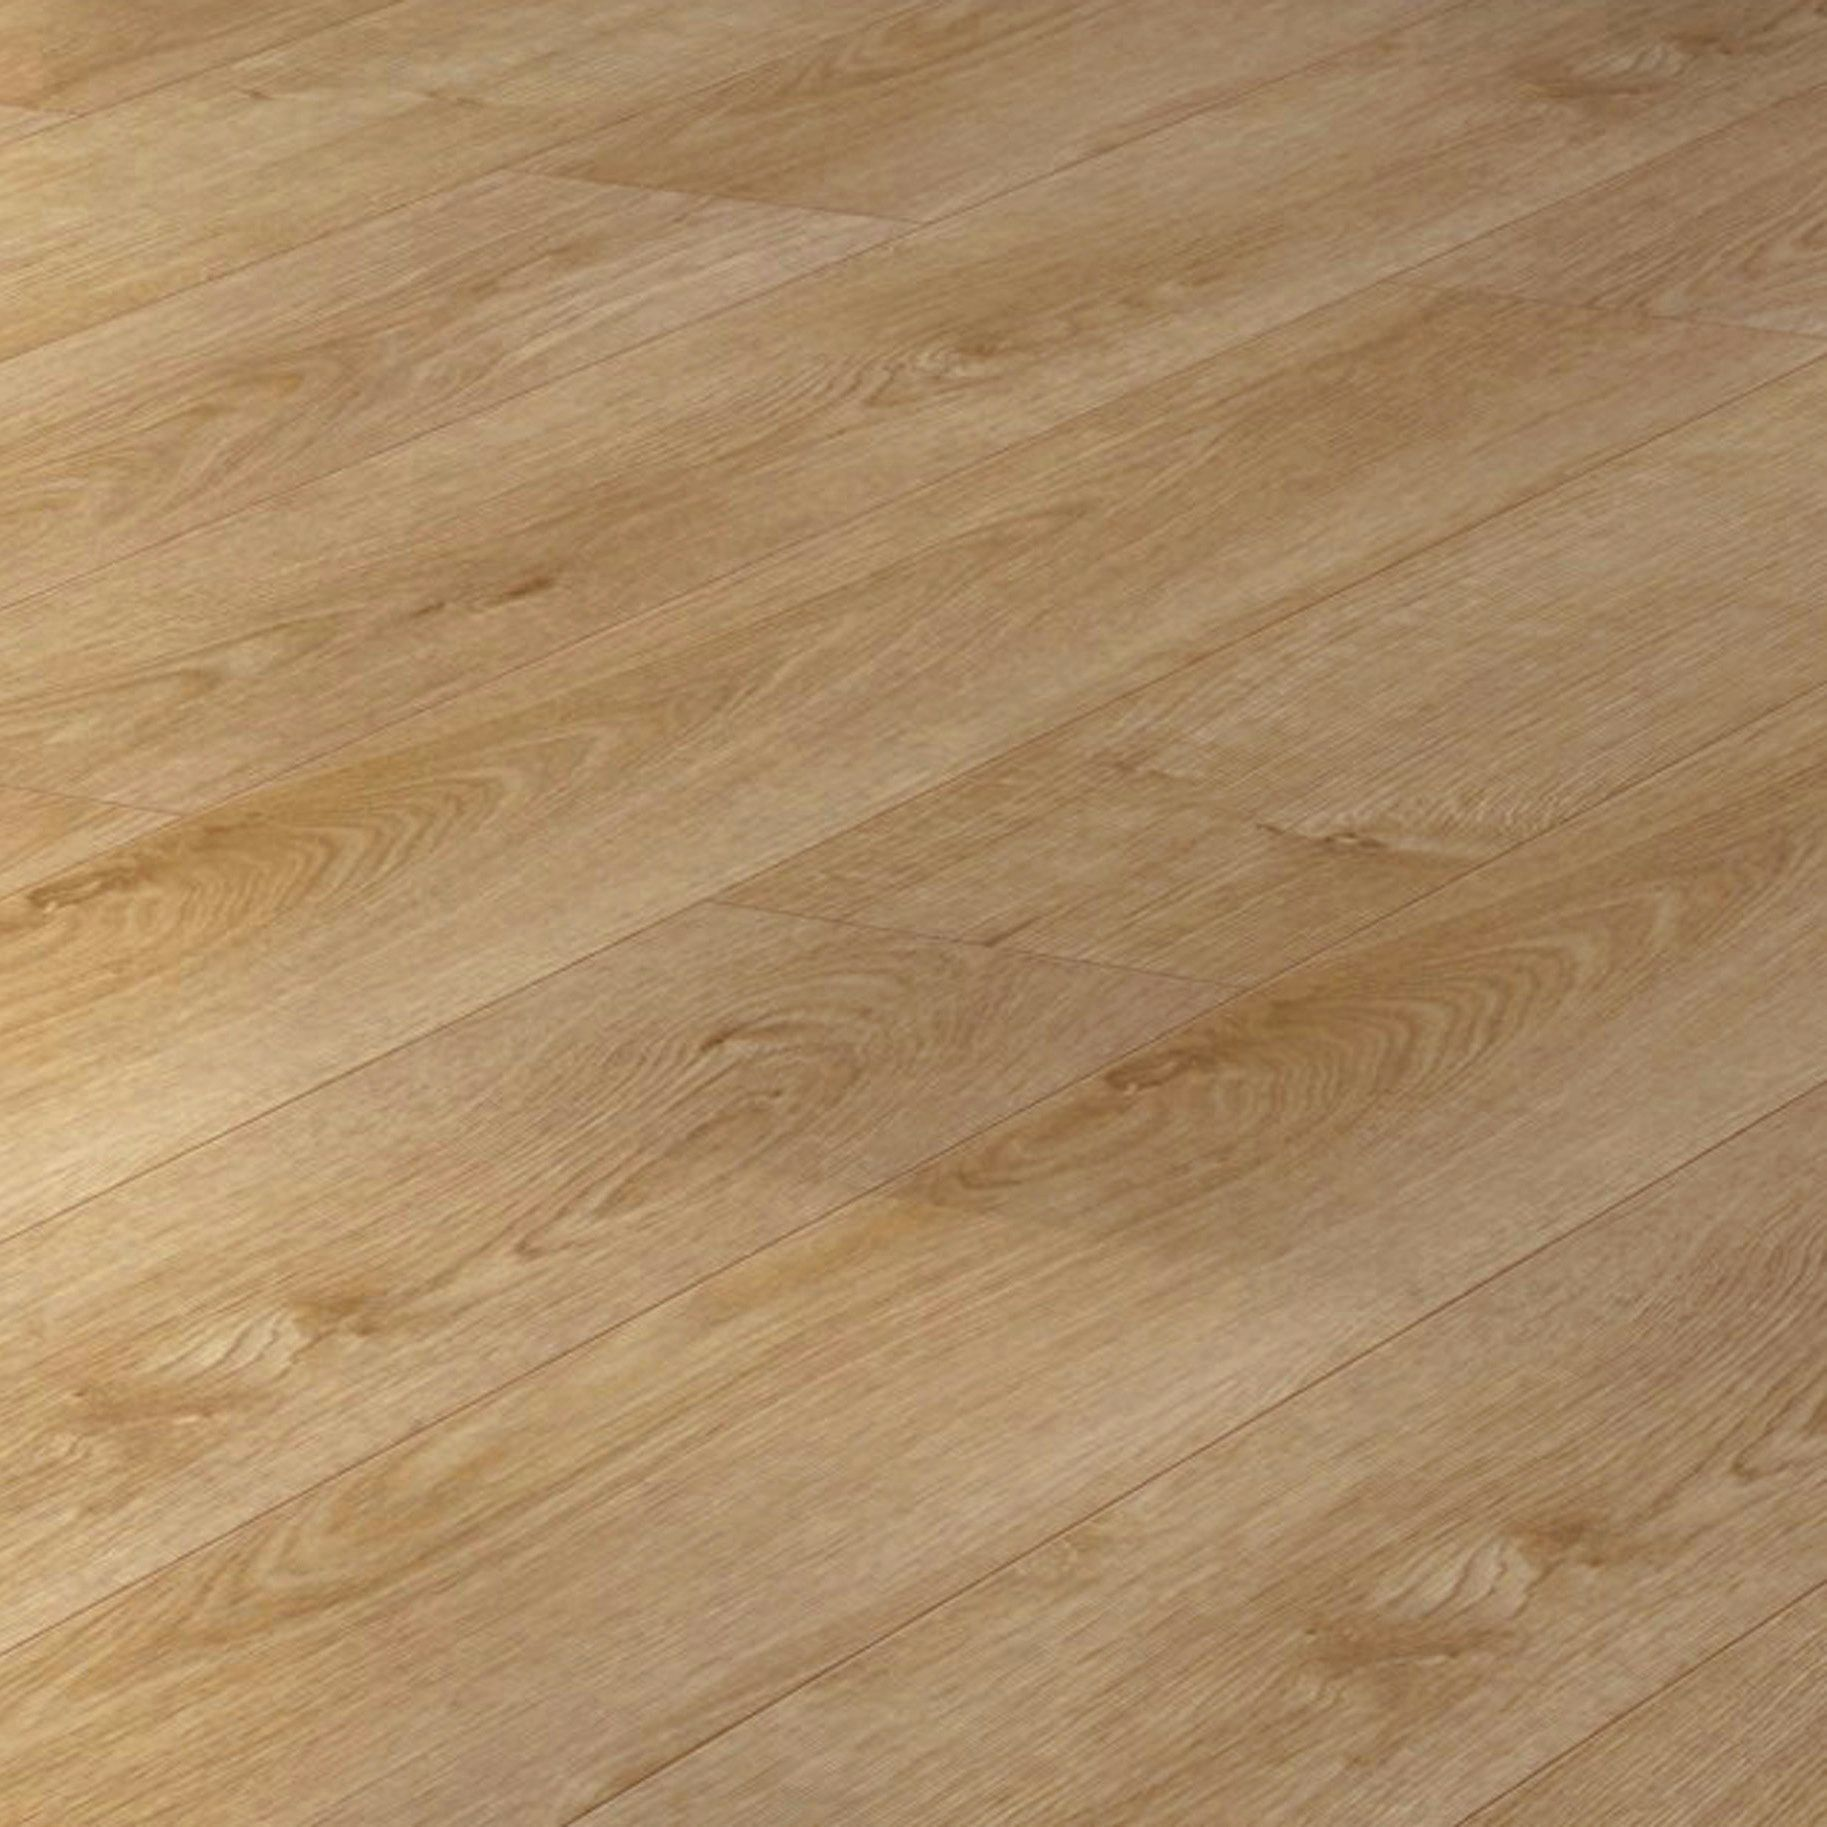 Overture Natural Milano Oak Effect Laminate Flooring 1 25 M² Sample